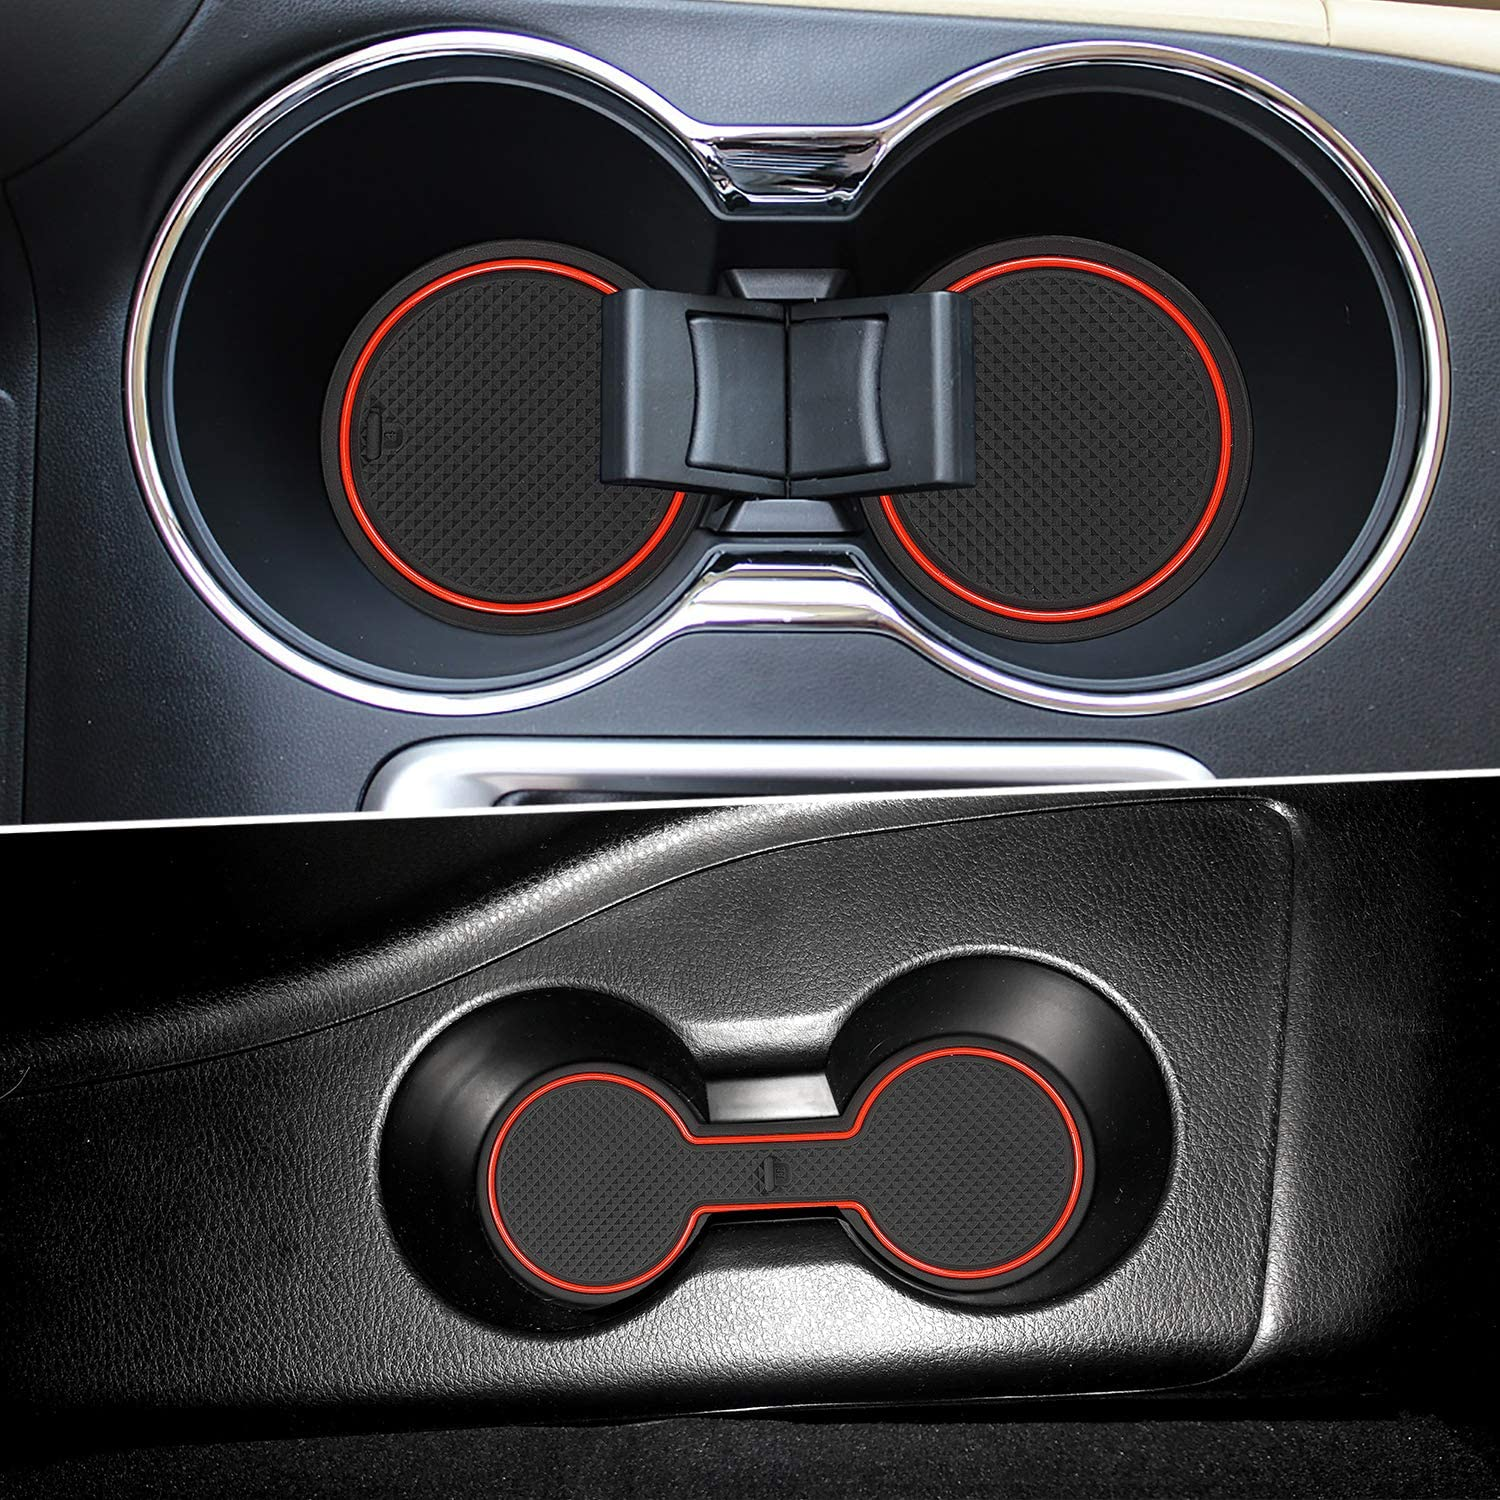 14pcs//Set, Red Auovo Anti Dust Door Mats for Toyota Highlander 2019 2018 2017 2016 2015 2014 Interior Accessories Custom Fit Door Compartment Cup Center Console Liners